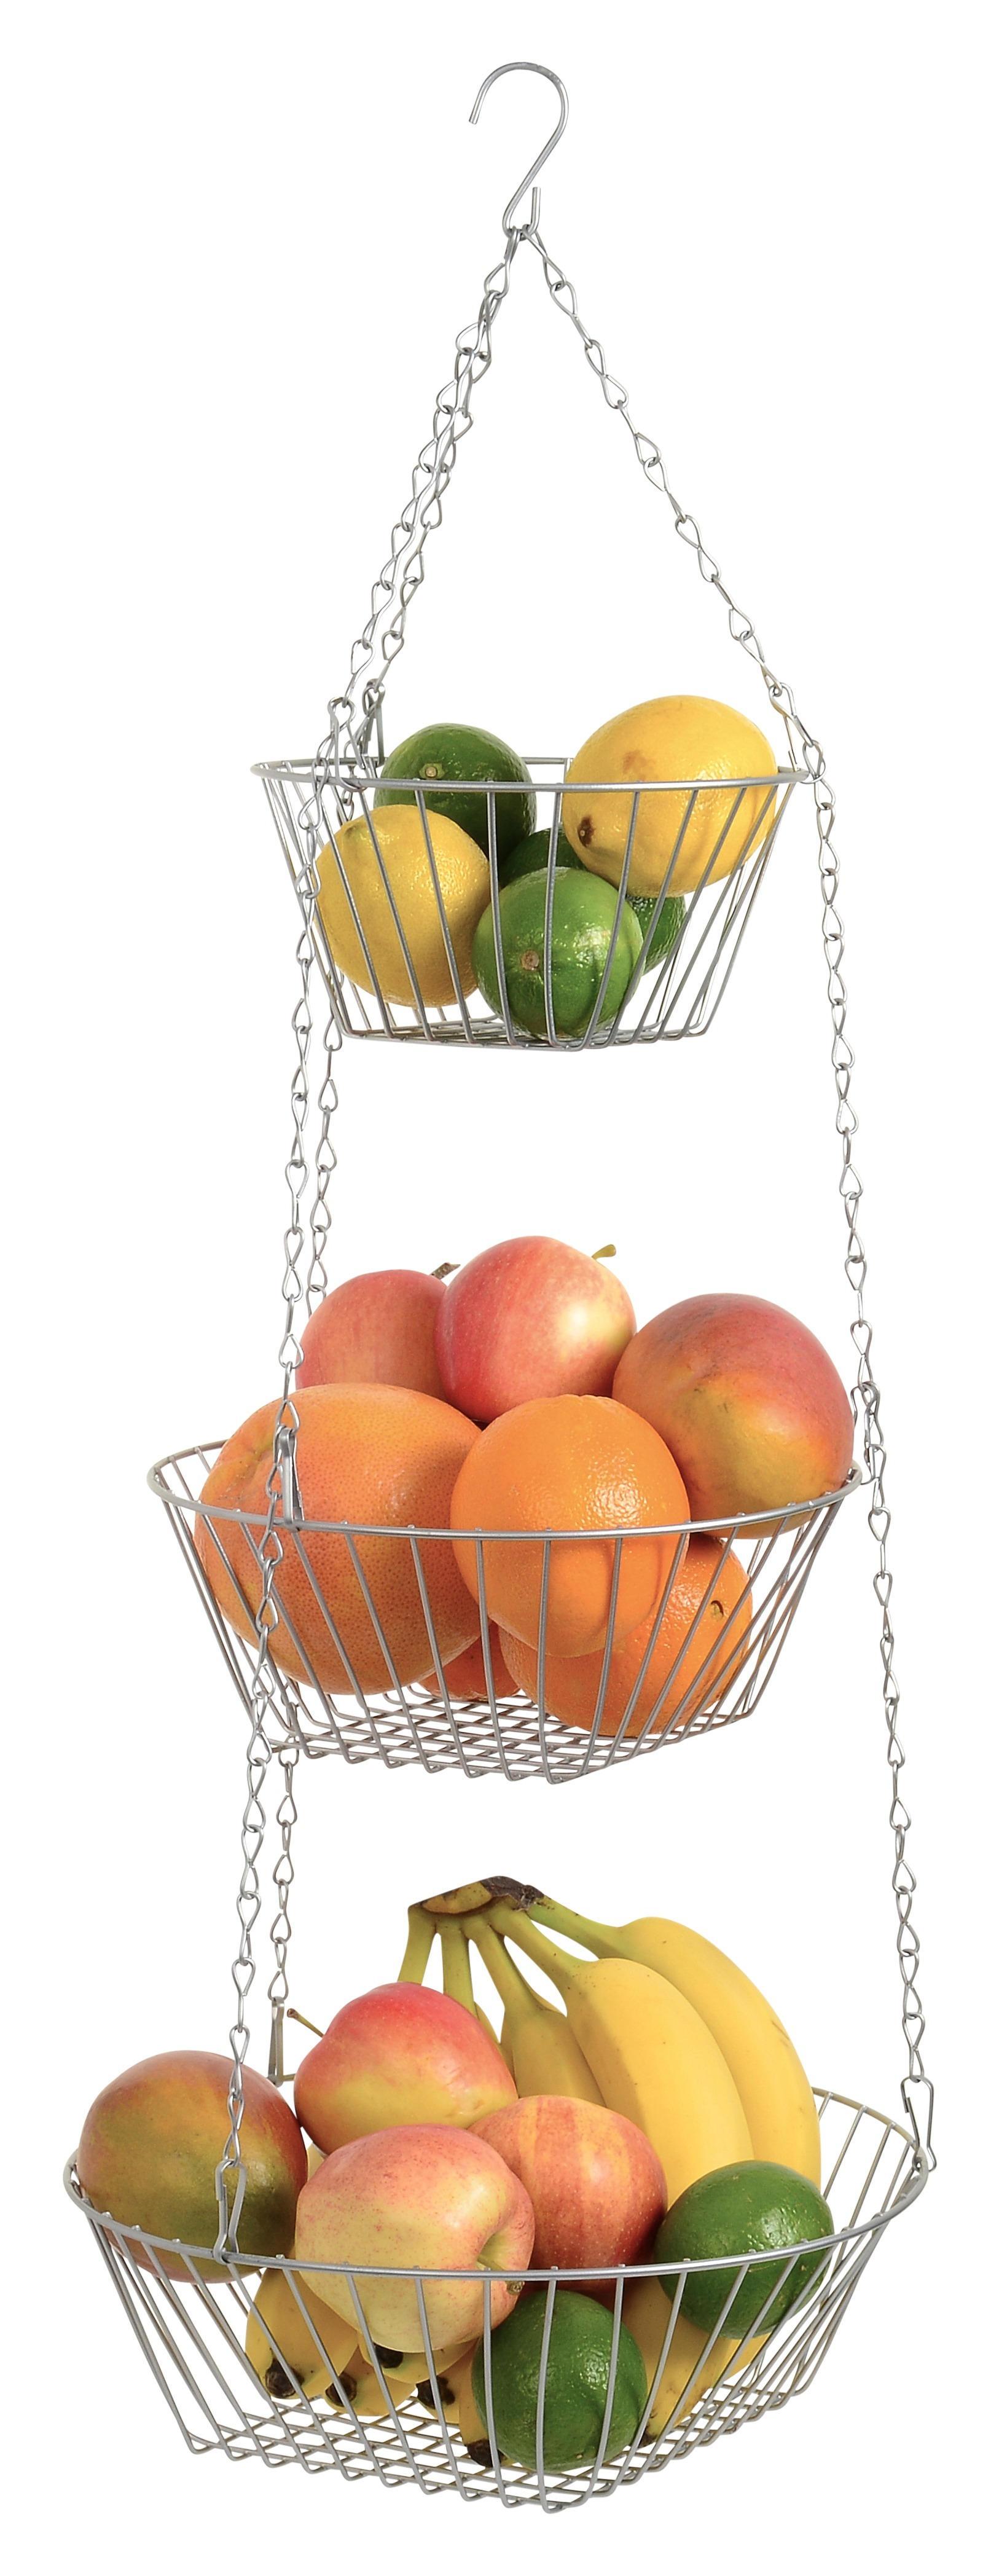 Hanging Fruit Basket 3 Tier, Round, For Kitchen, Silver, 25 Inches Long